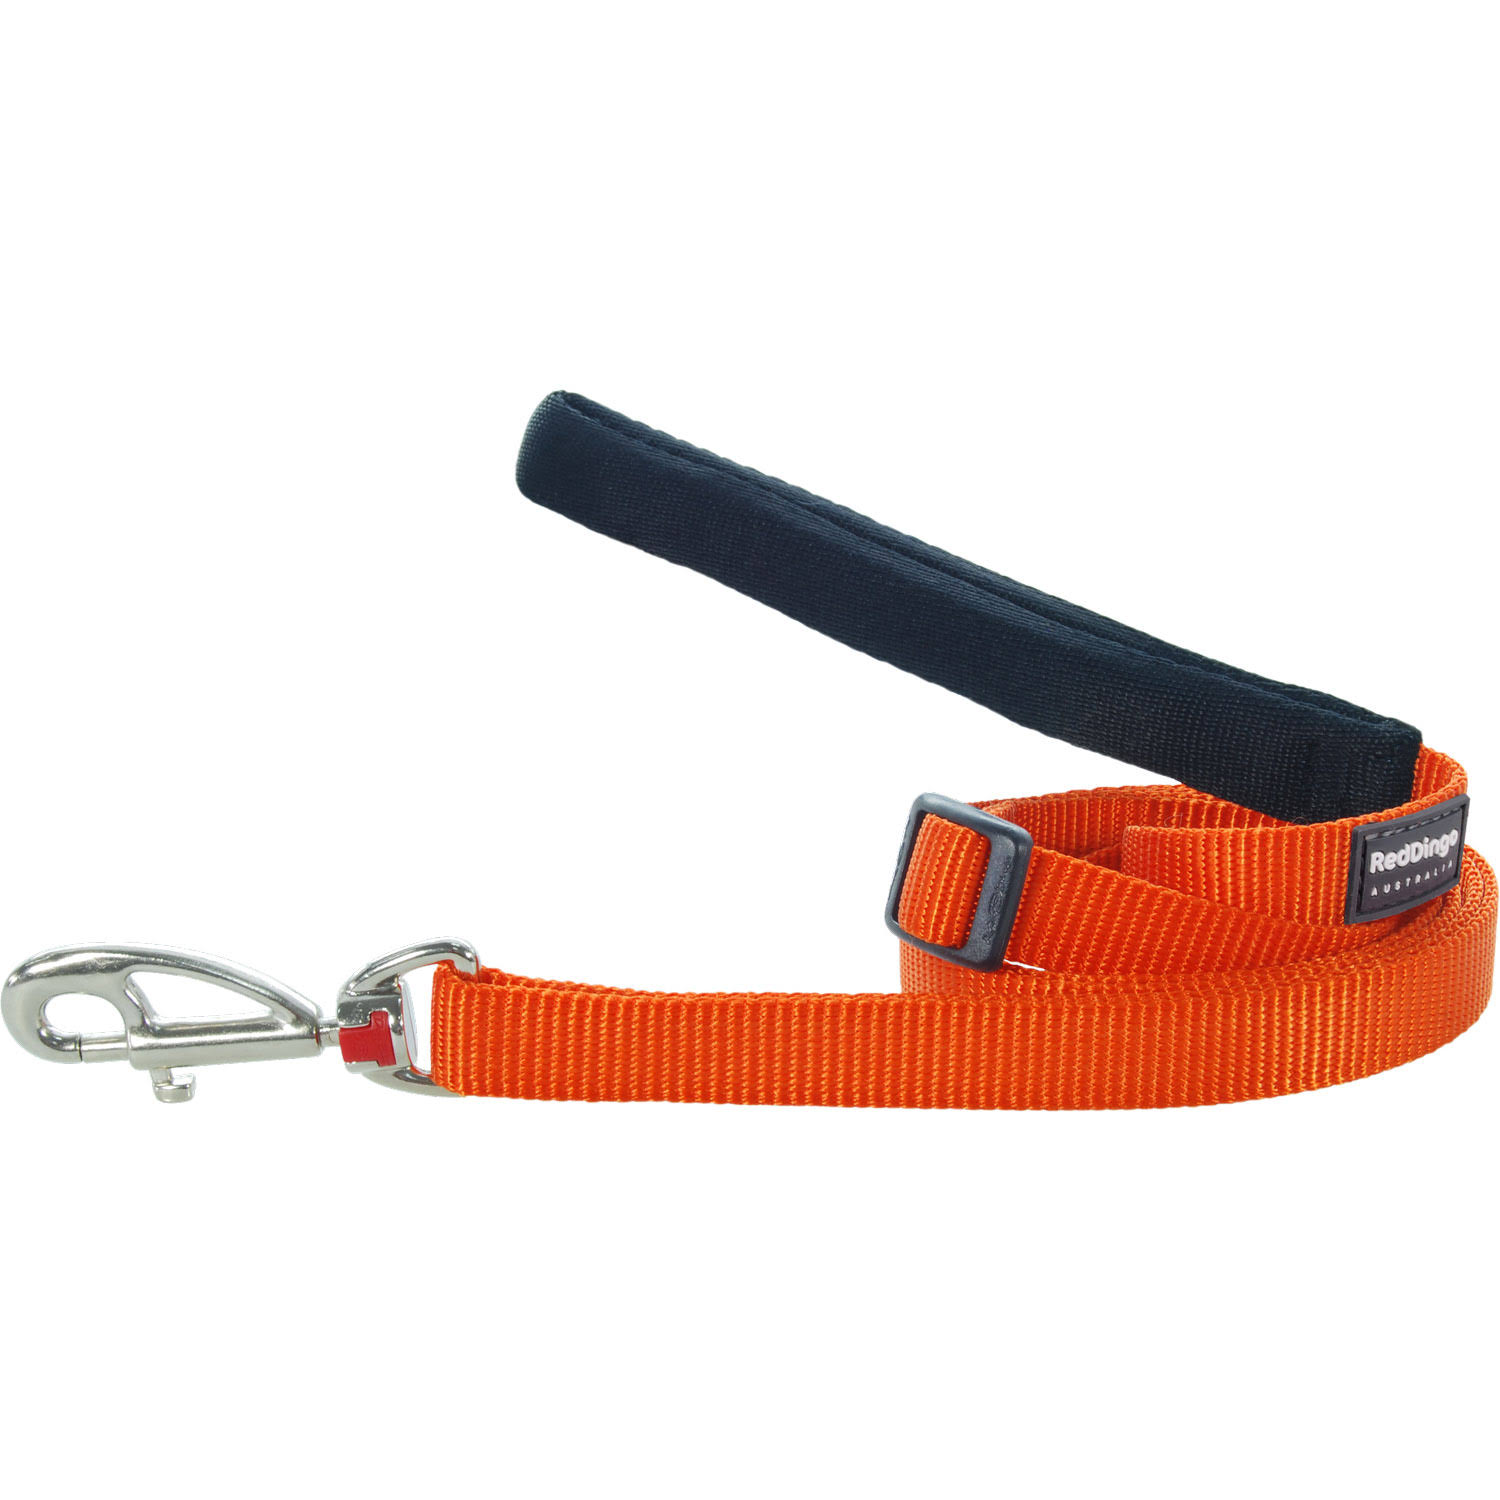 Red Dingo Classic Adjustable Dog Leash, Orange, Medium